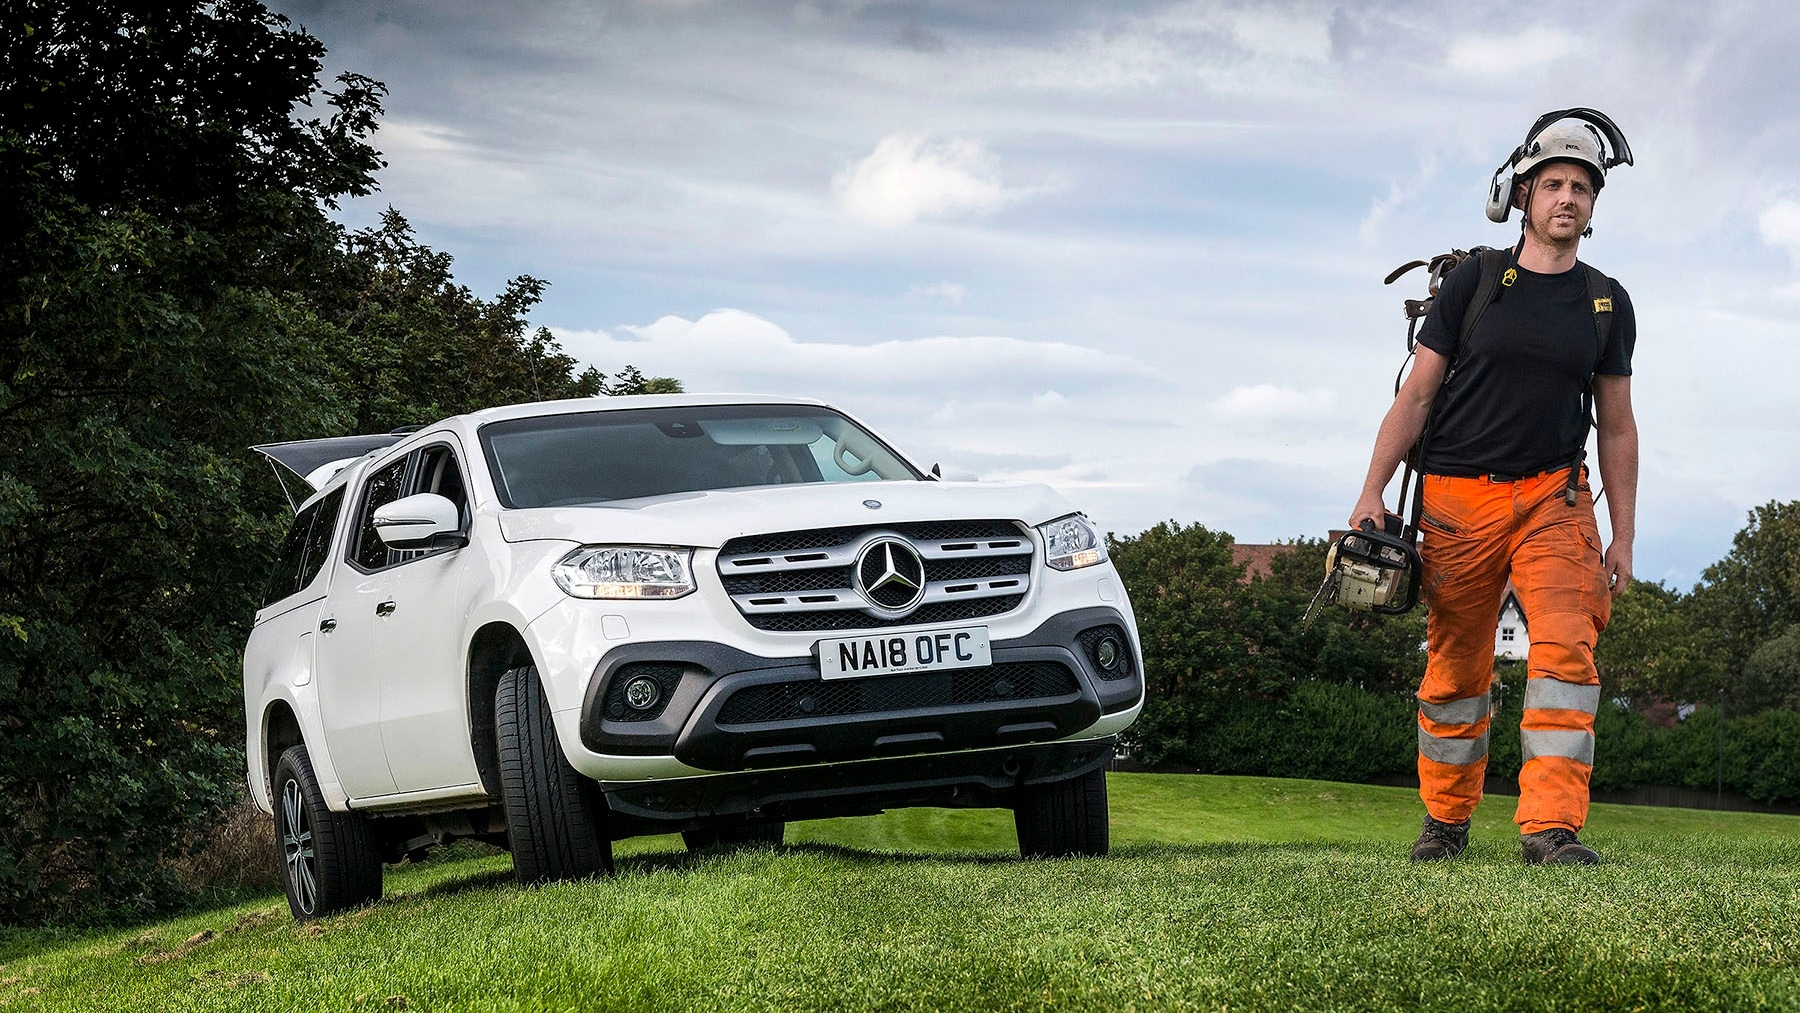 9dfbe8555b51 Our X-Class is exceptionally comfortable and has an extremely professional  high-quality image.